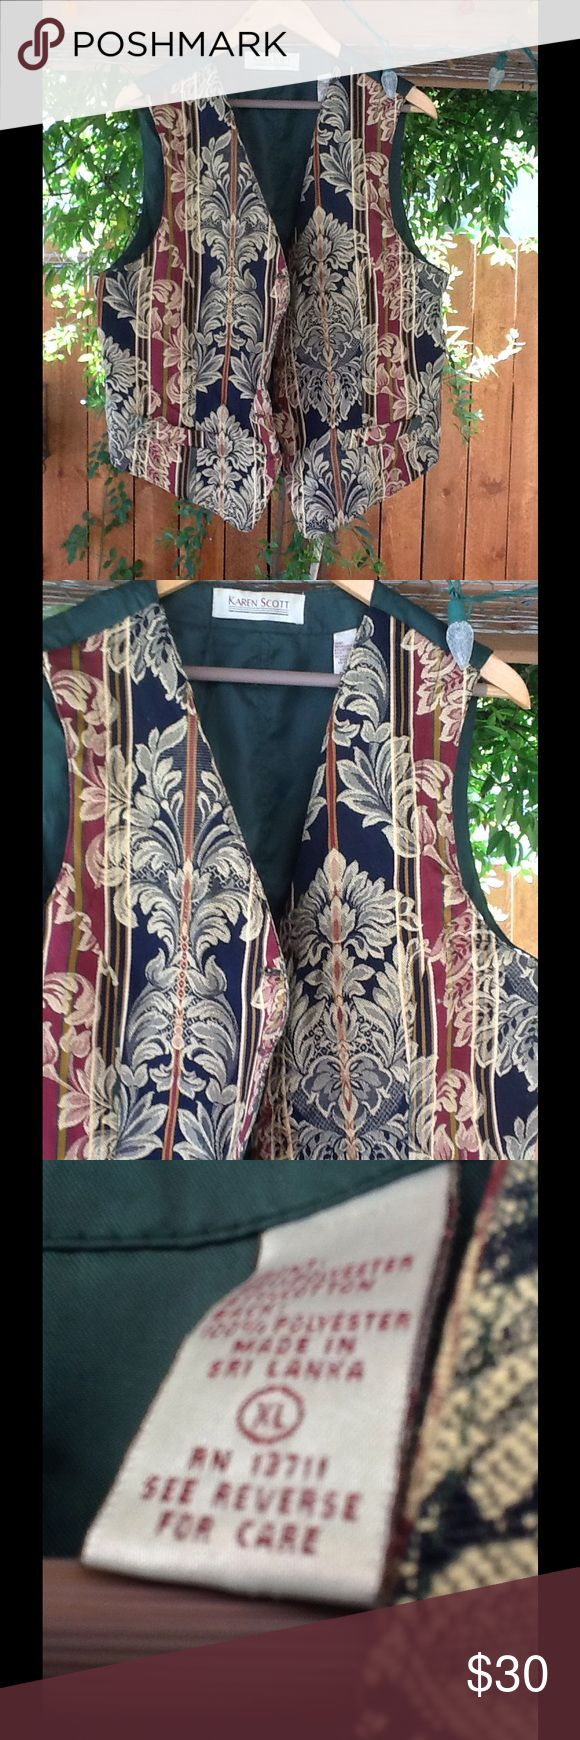 90's Vintage Floral Vest Size XL Dark Green in the back with colors of dark brown, dark blue, and gold. Size XL. (14) Karen Scott Jackets & Coats Vests